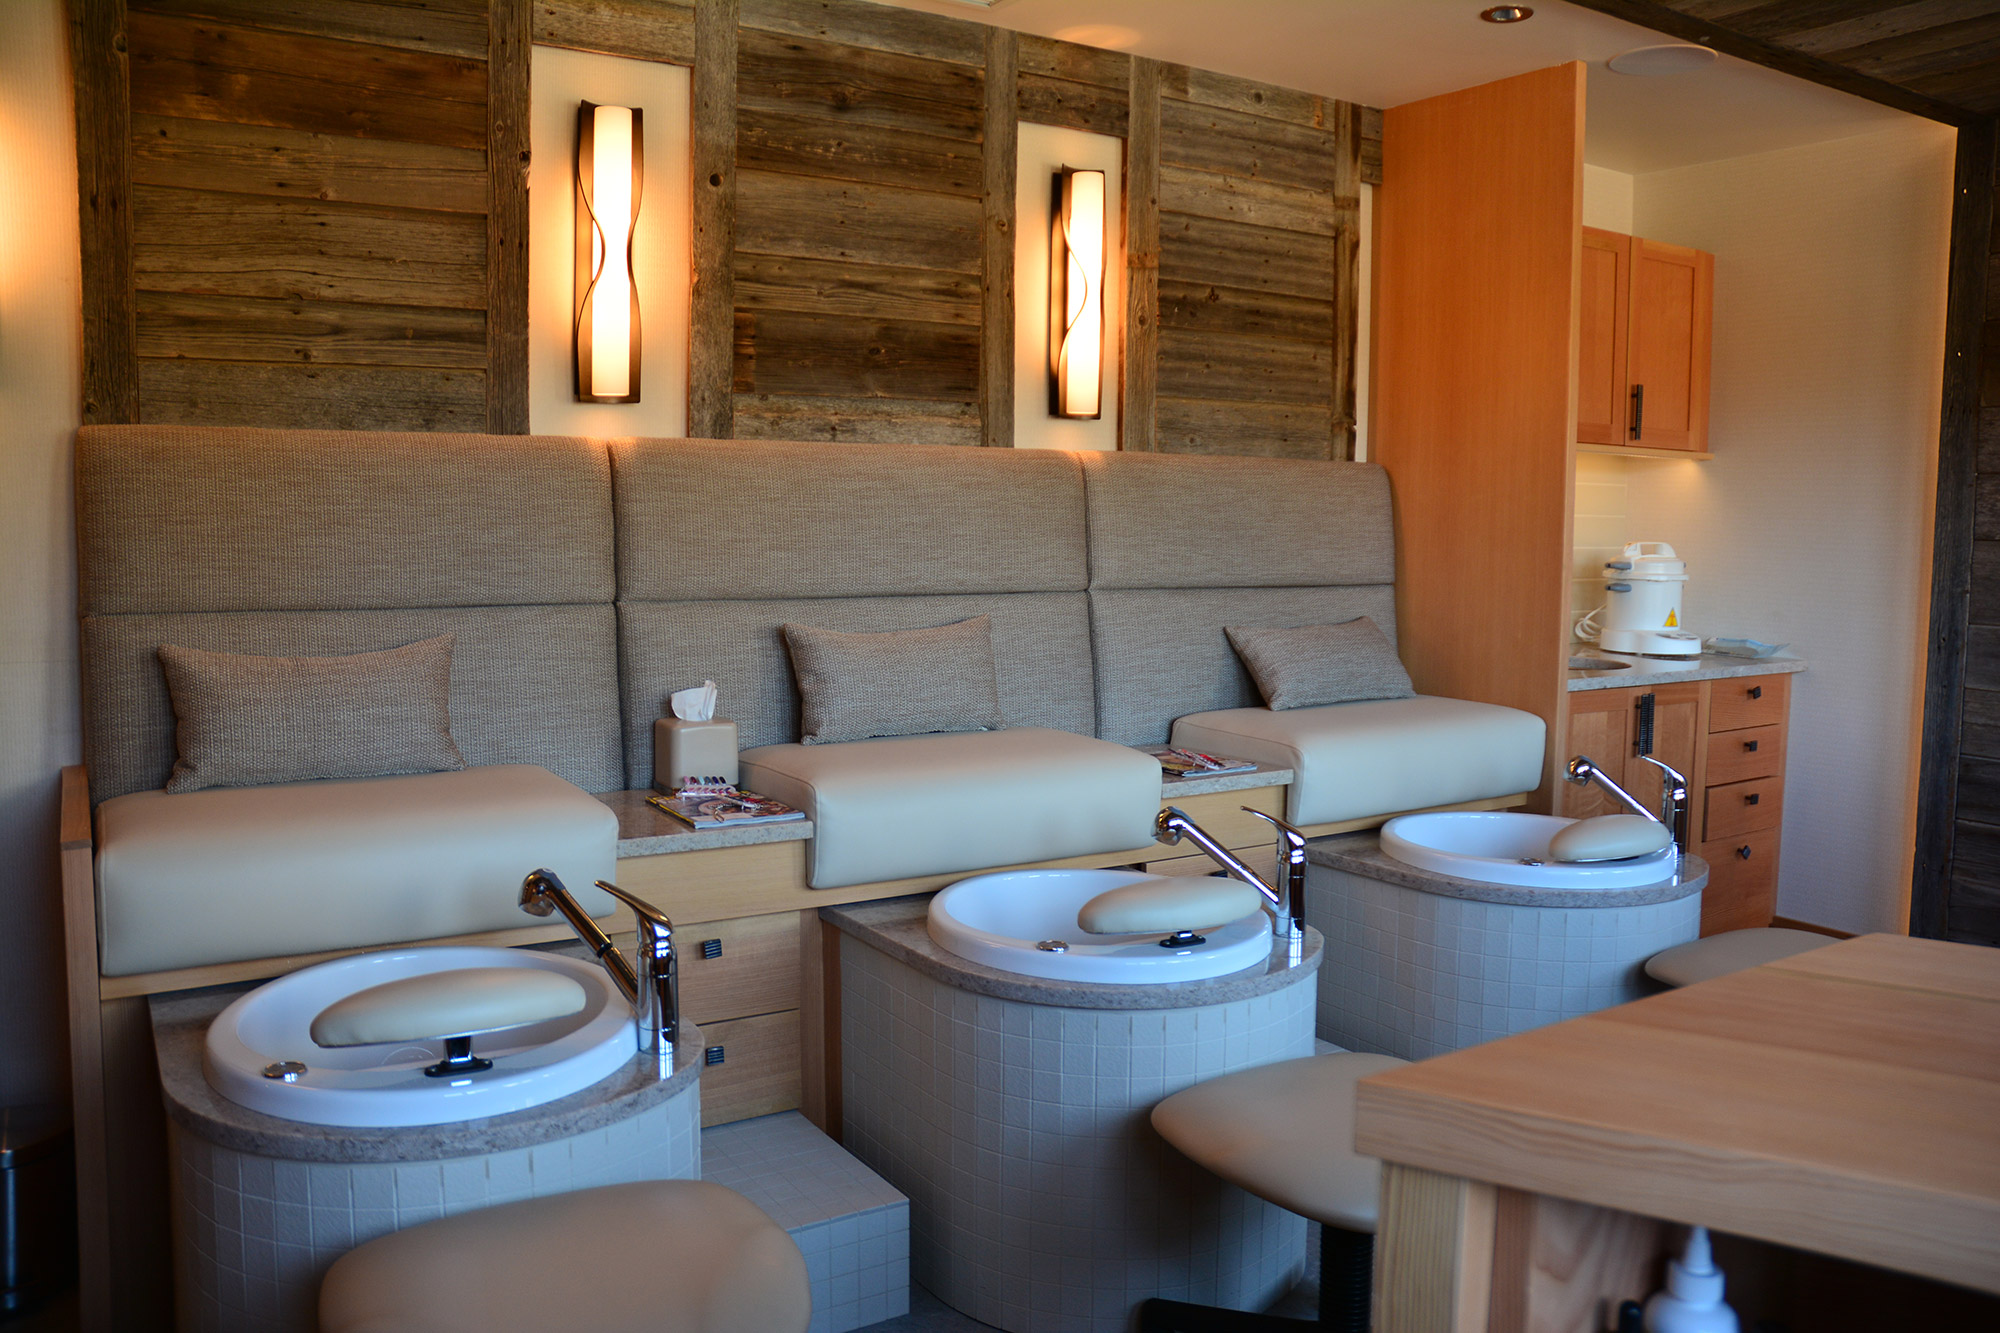 Pedicure & Manicure Room